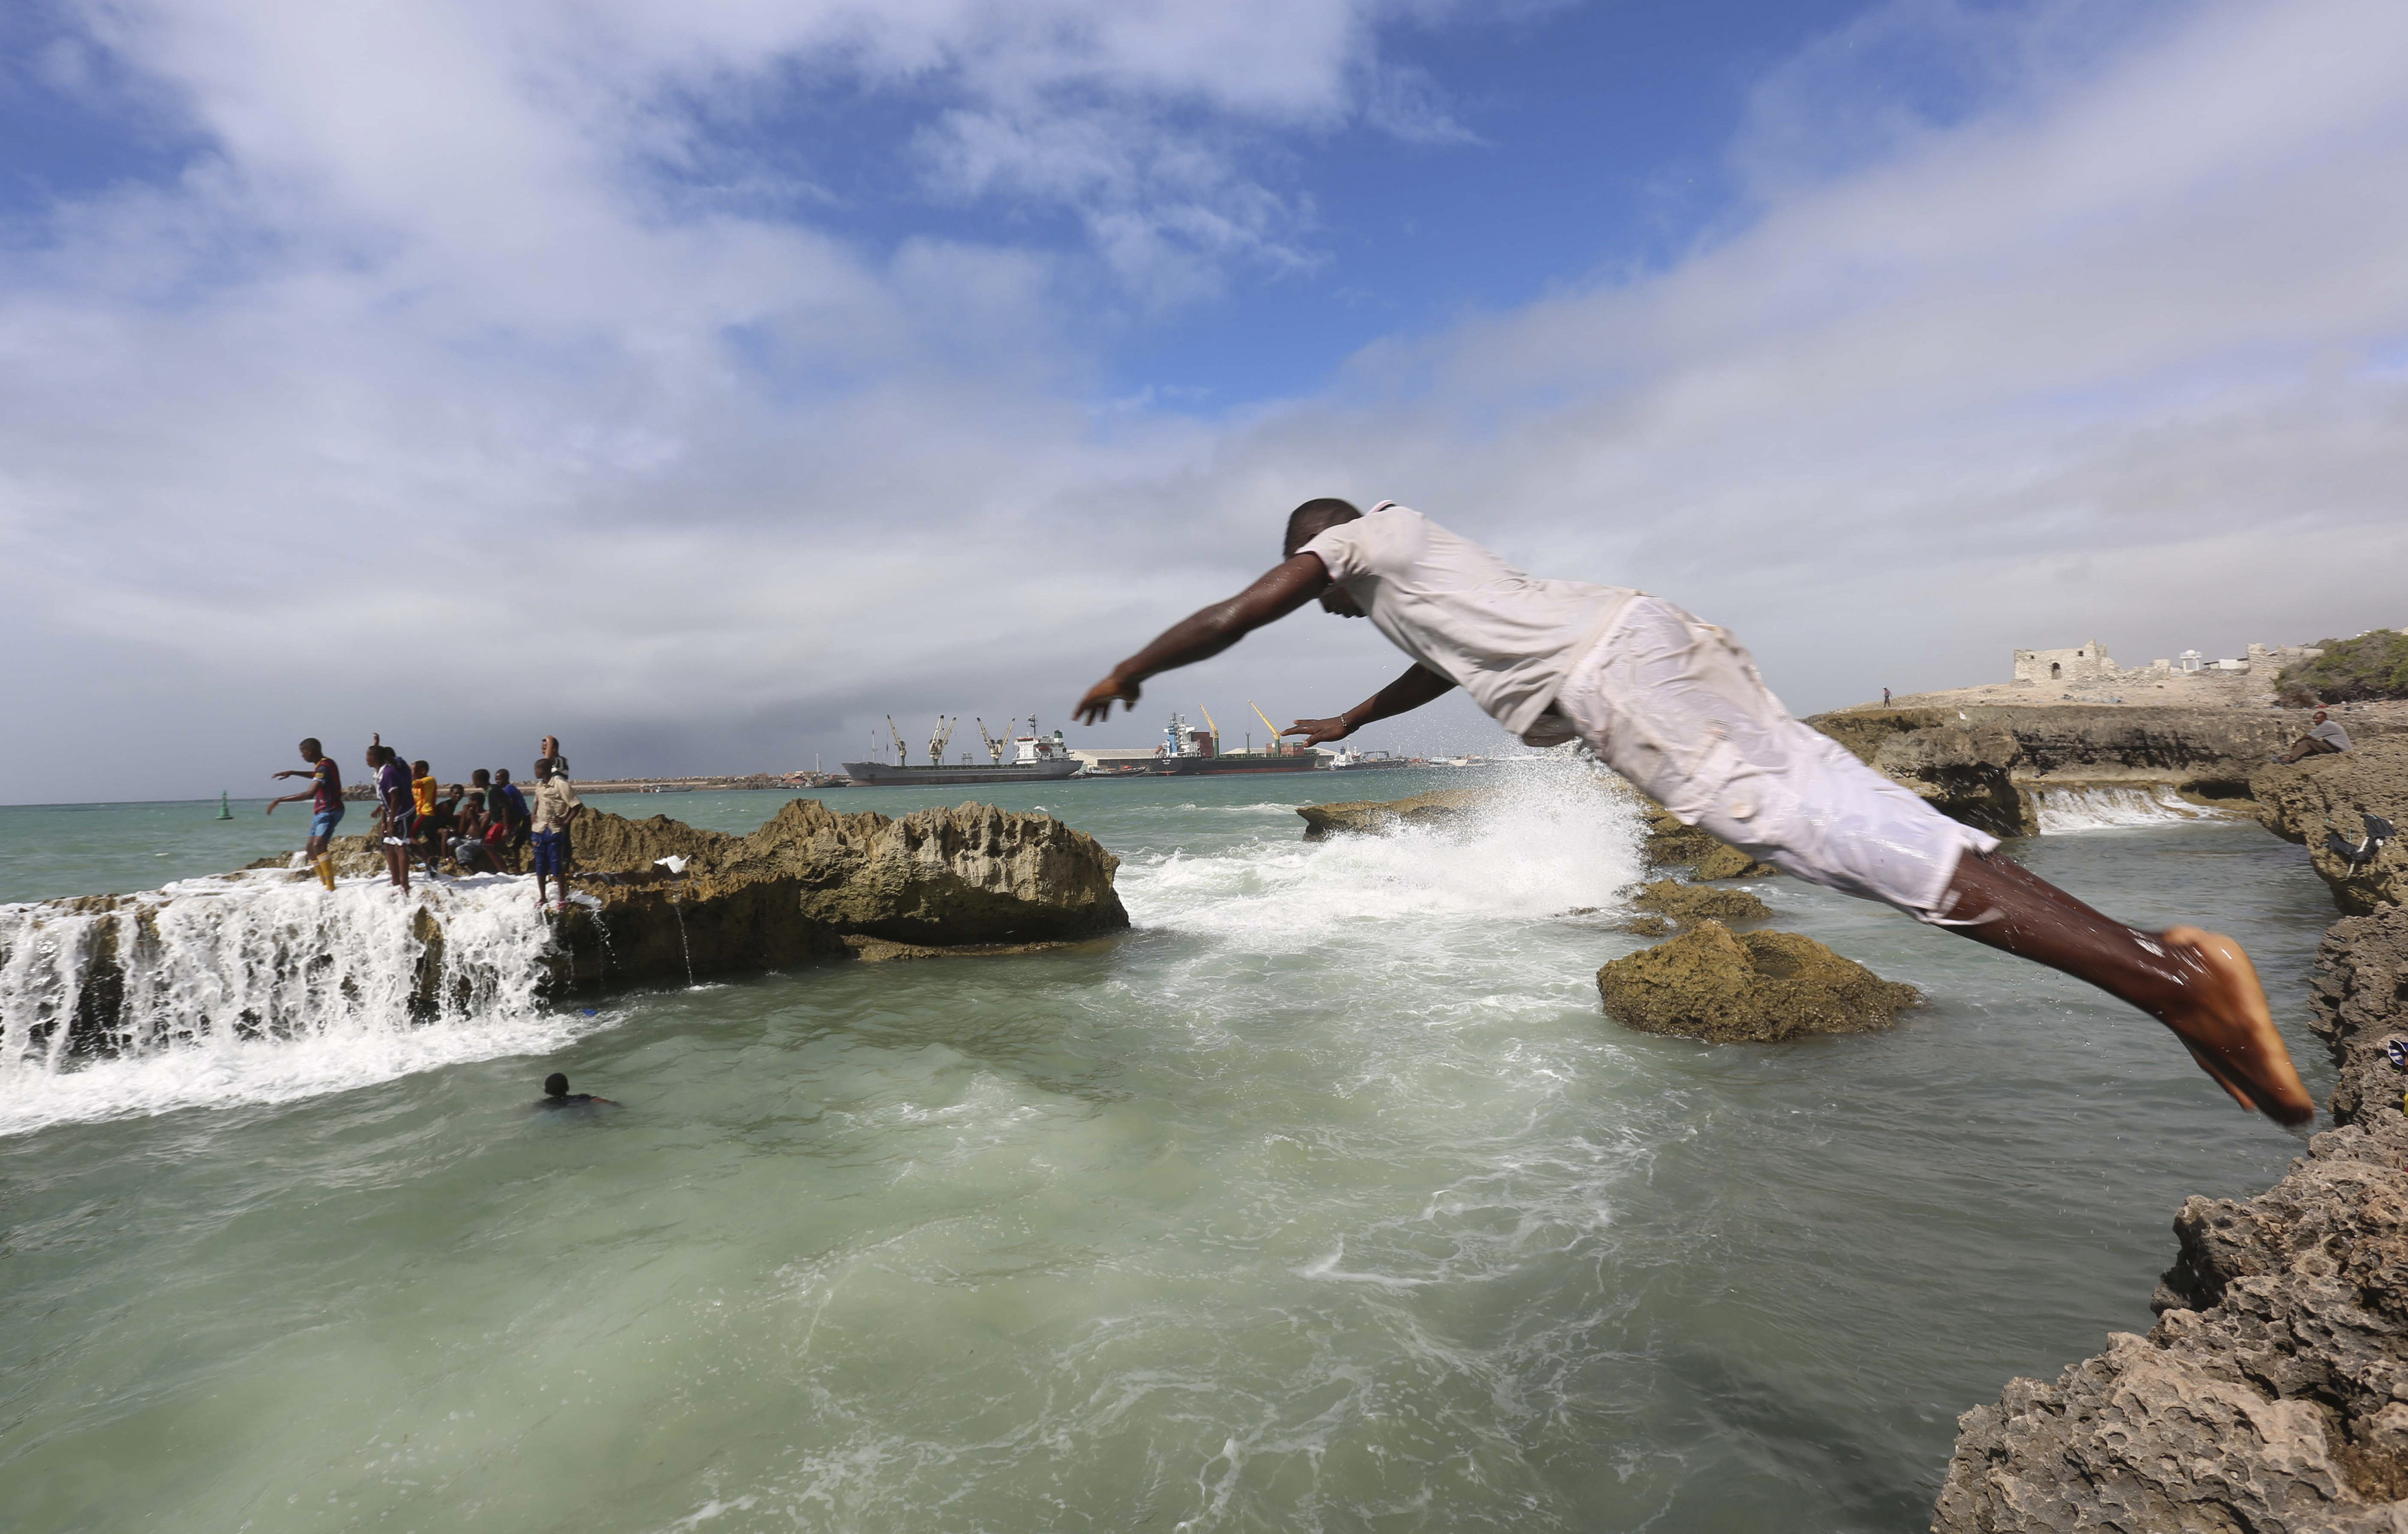 A man dives into the Indian Ocean waters at Lido beach, north of Somalia's capital Mogadishu